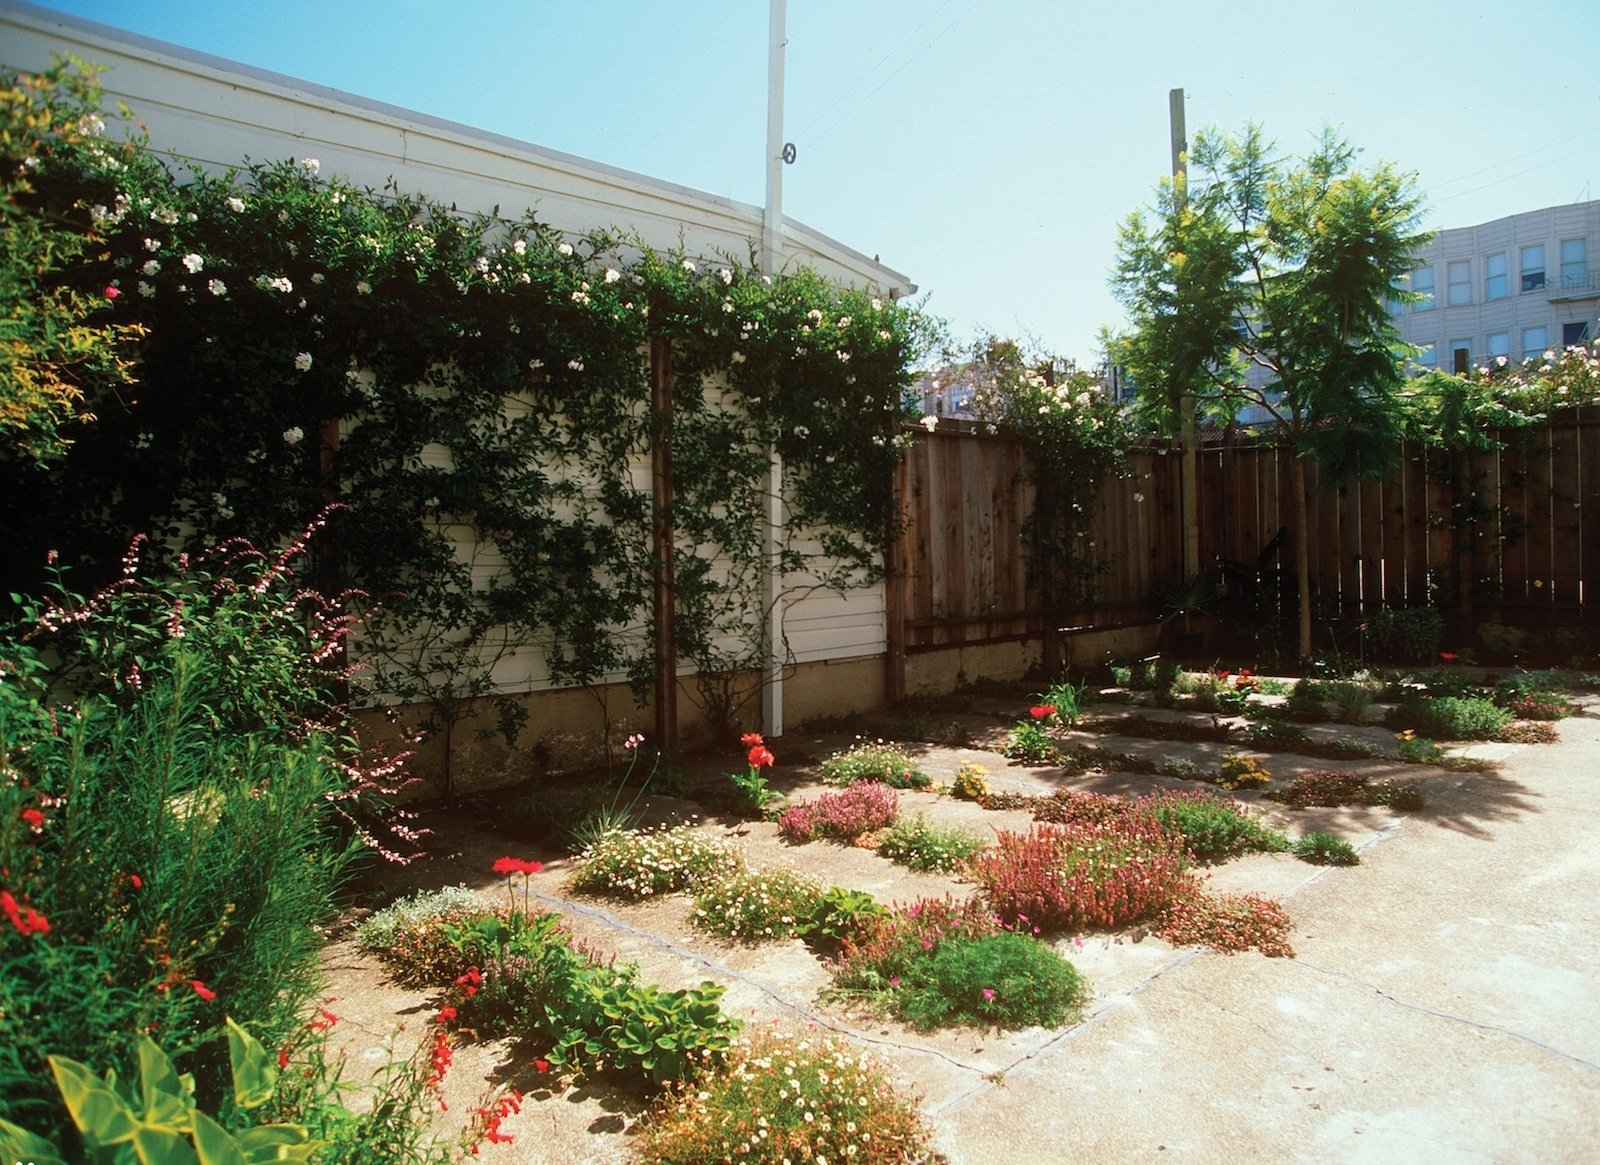 And here's the finished product. In 2009, the project garnered an Honor award from the ASLA in the Residential Design category. The 800-square foot garden cost just $500 to create.  Photo 6 of 13 in CMG Landscape Architecture